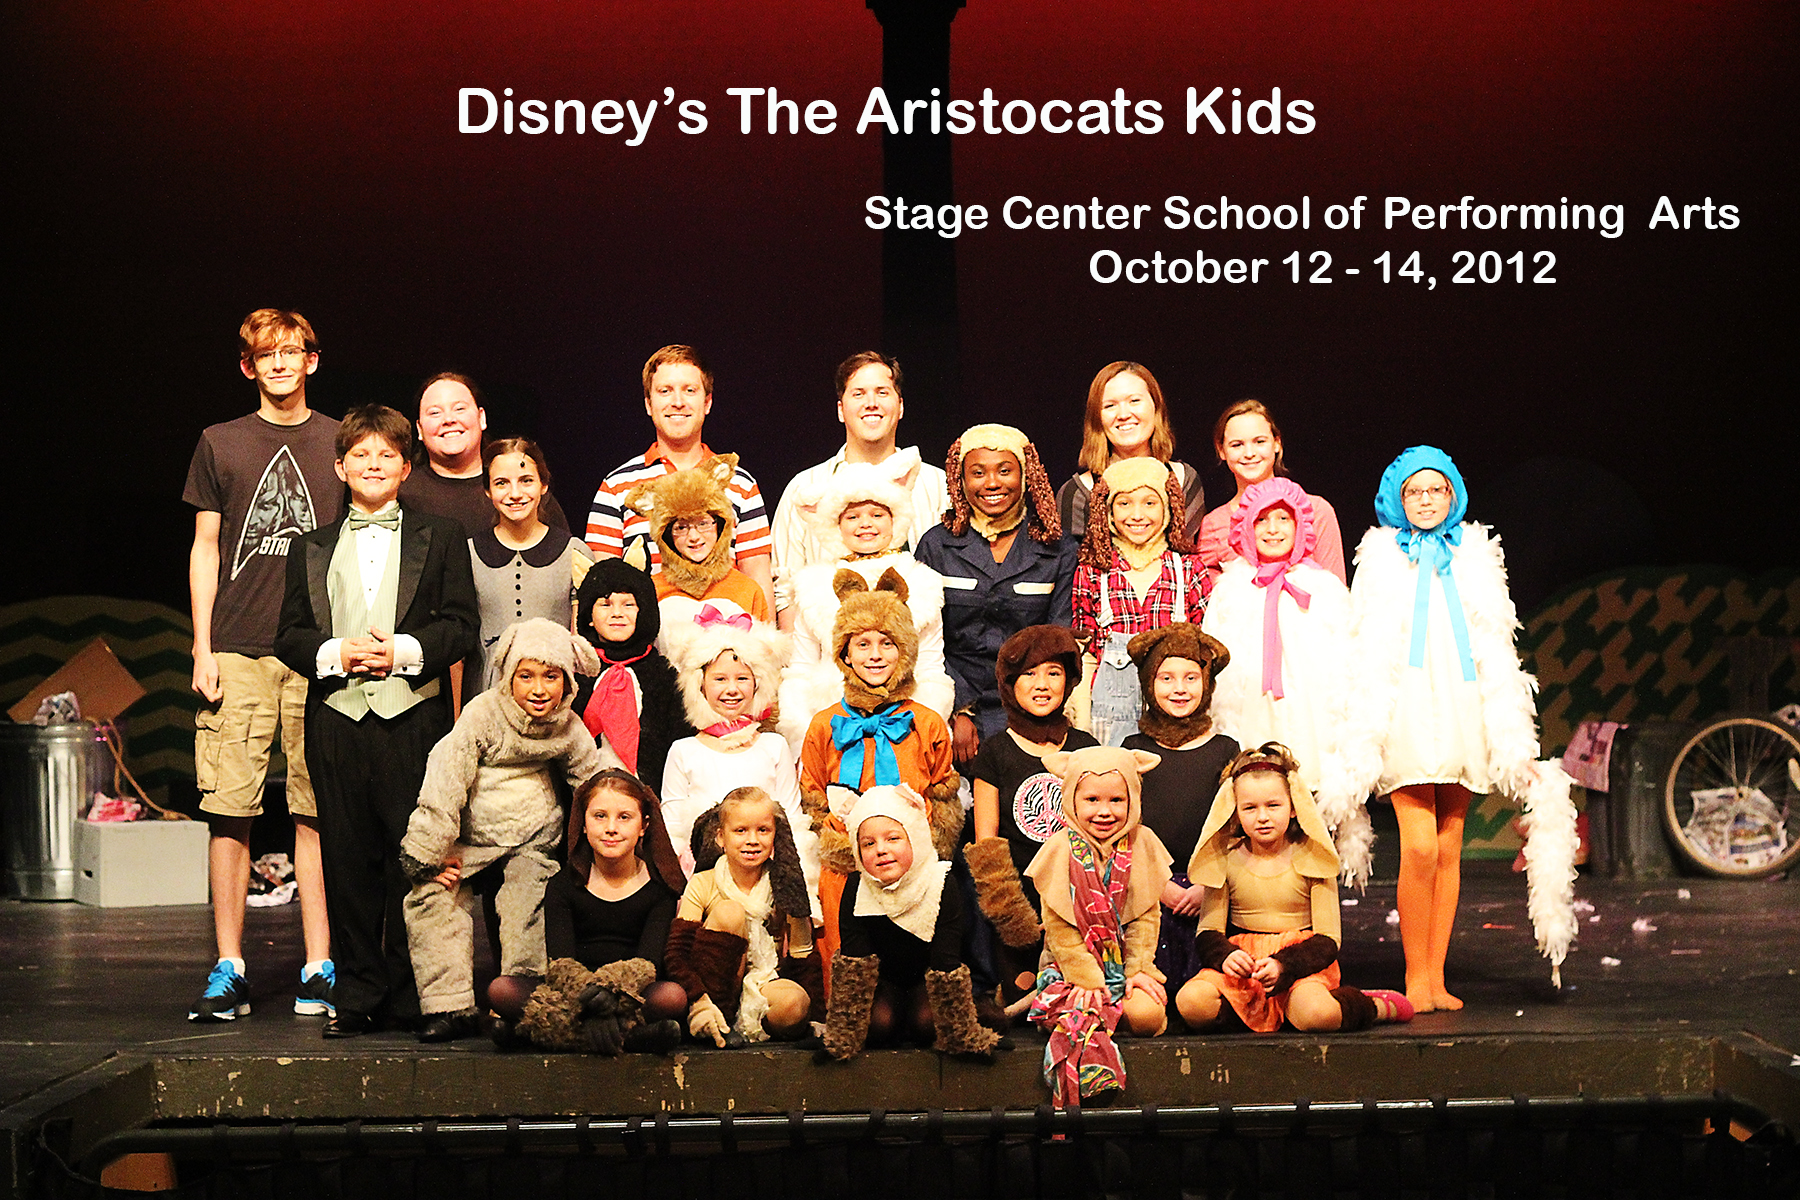 Aristocats cast & crew share